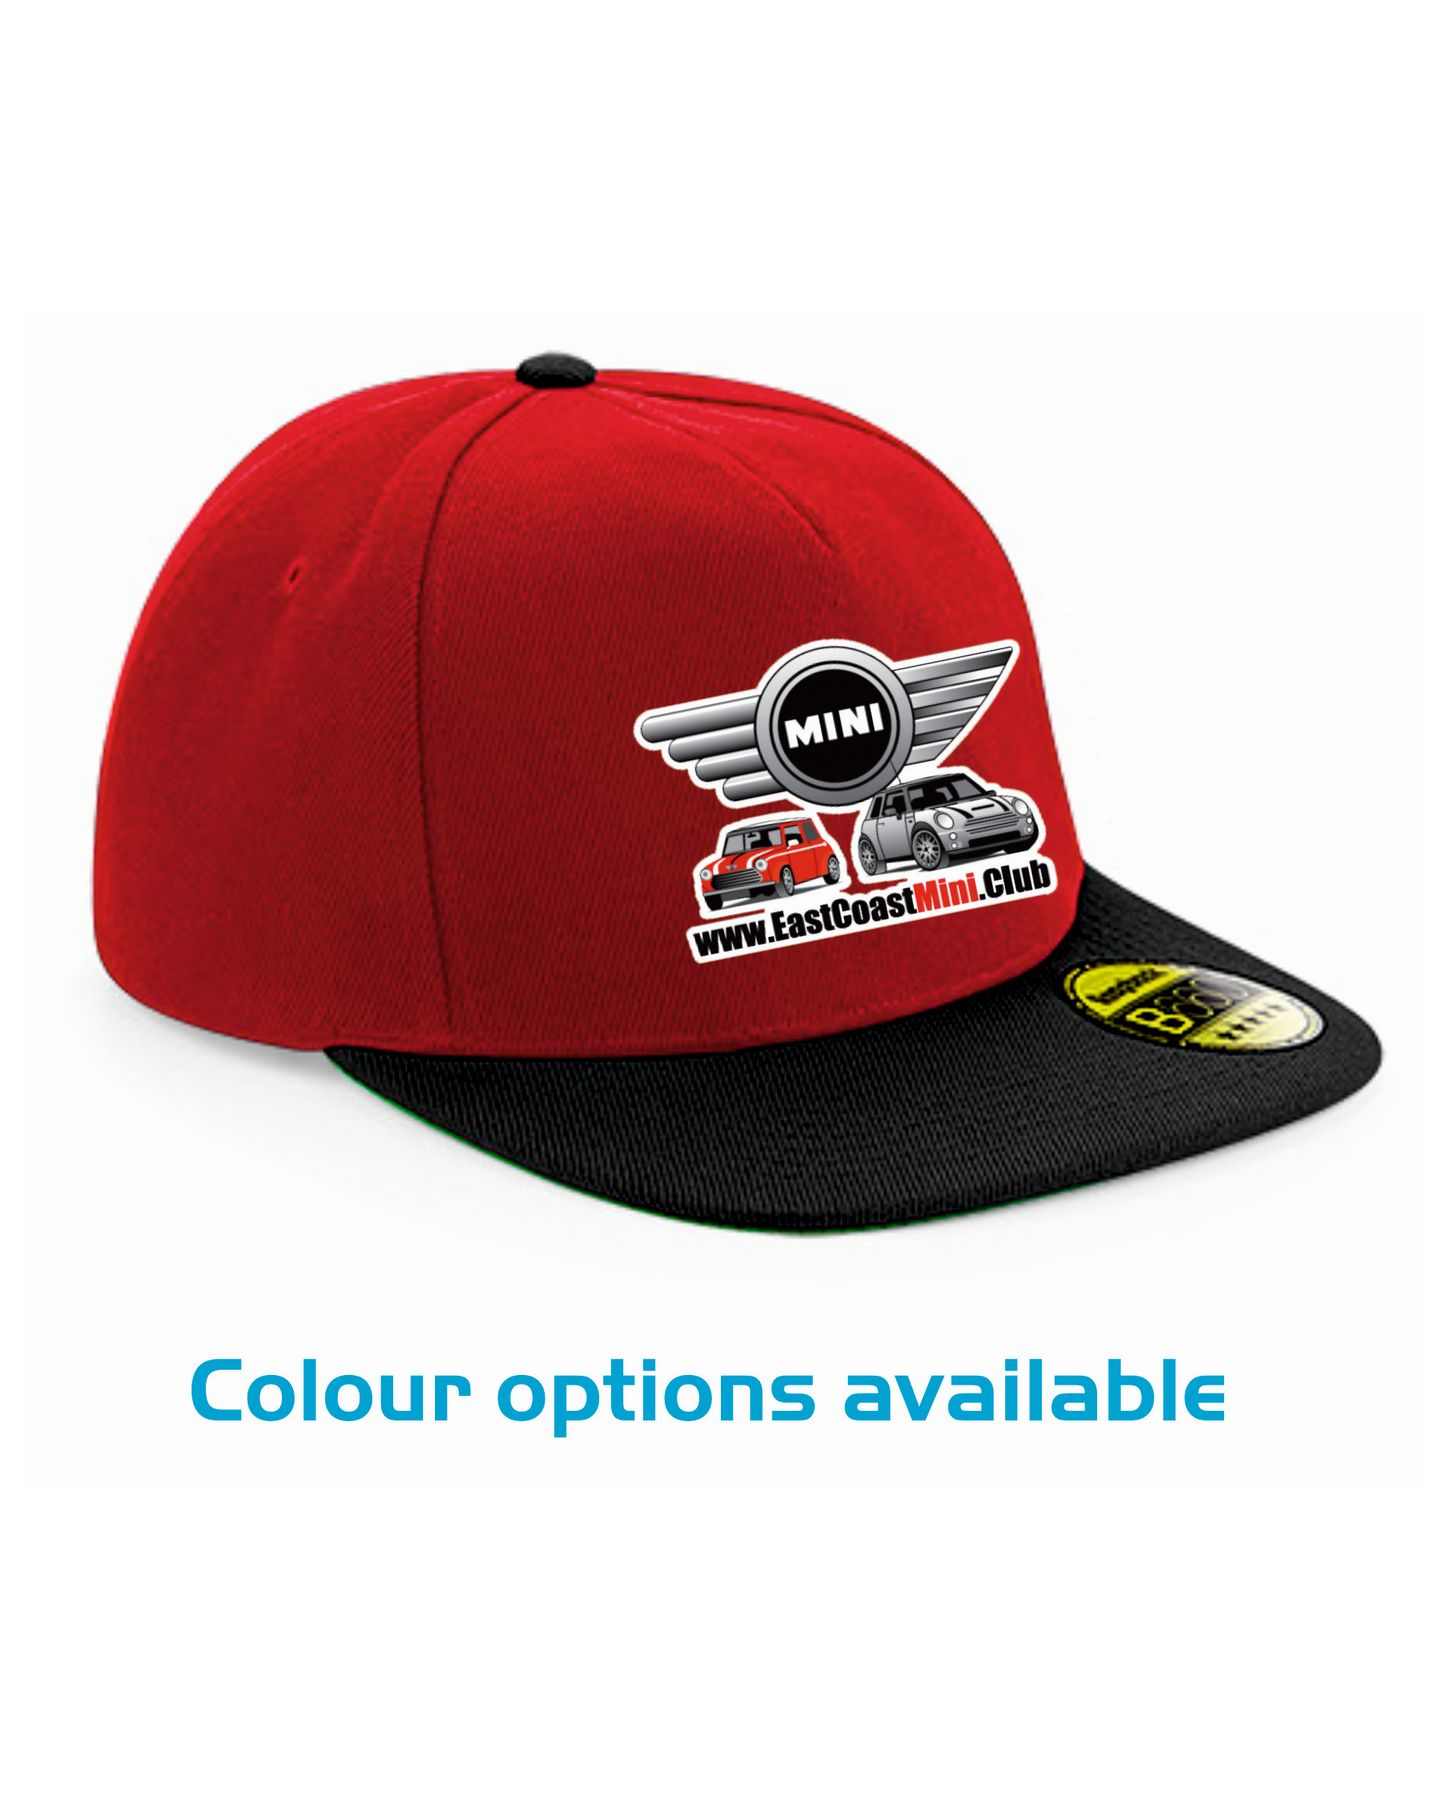 East Coast Mini Club – Cap Snapback